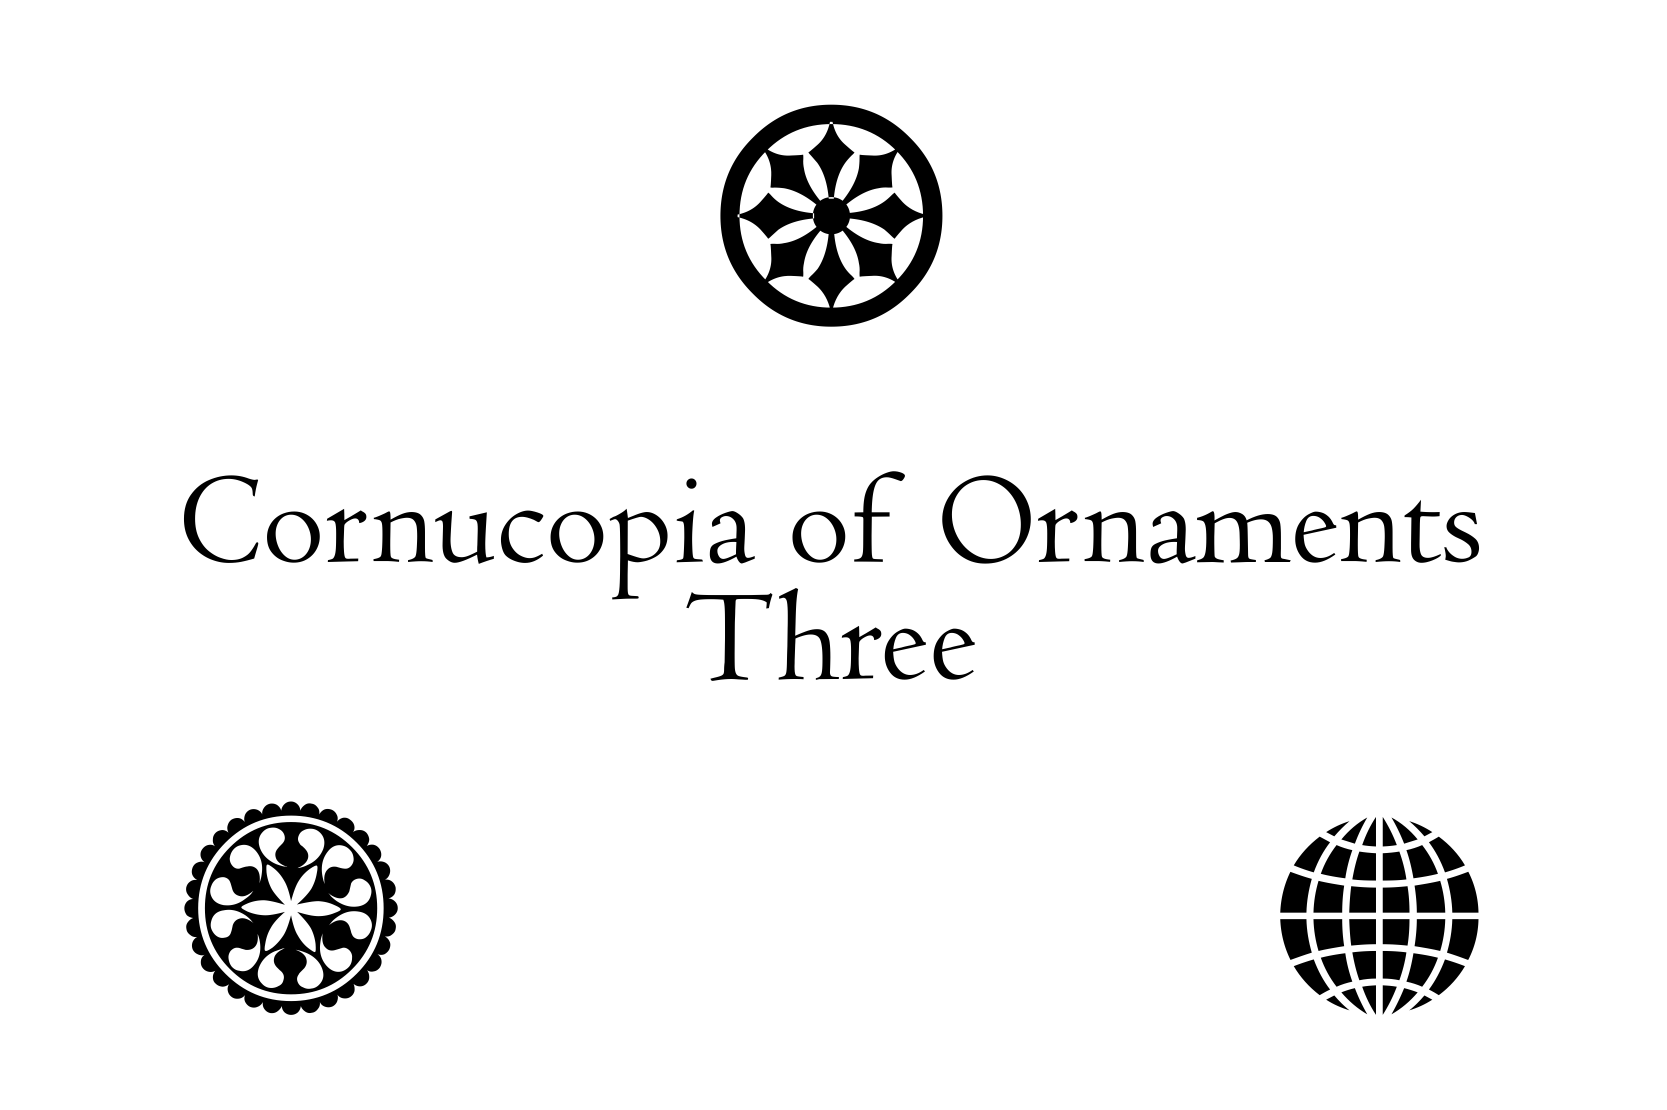 Cornucopia of Ornaments Three example image 3